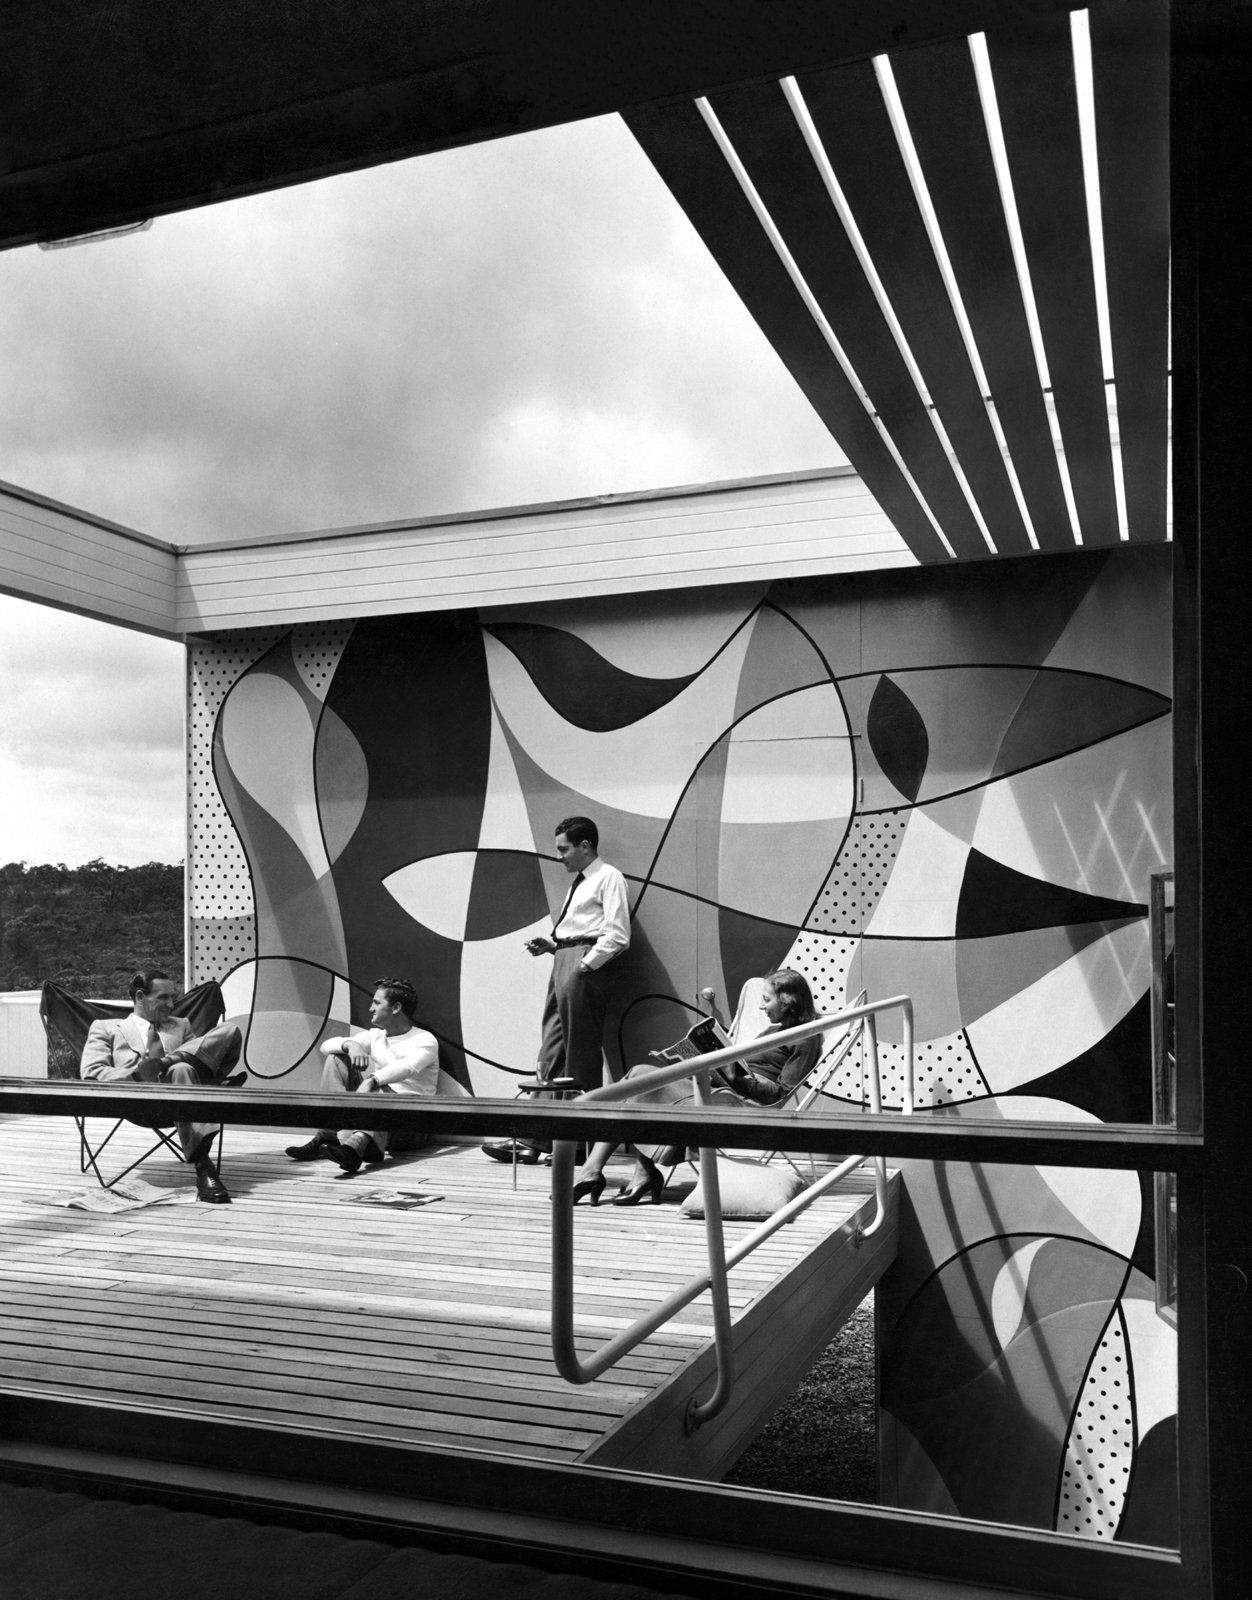 Rose Seidler House, Wahroonga, Sydney, Australia, 1948-50. Photo © Marcel Seidler  Photo 7 of 12 in Harry Seidler: Architecture, Art, and Collaborative Design